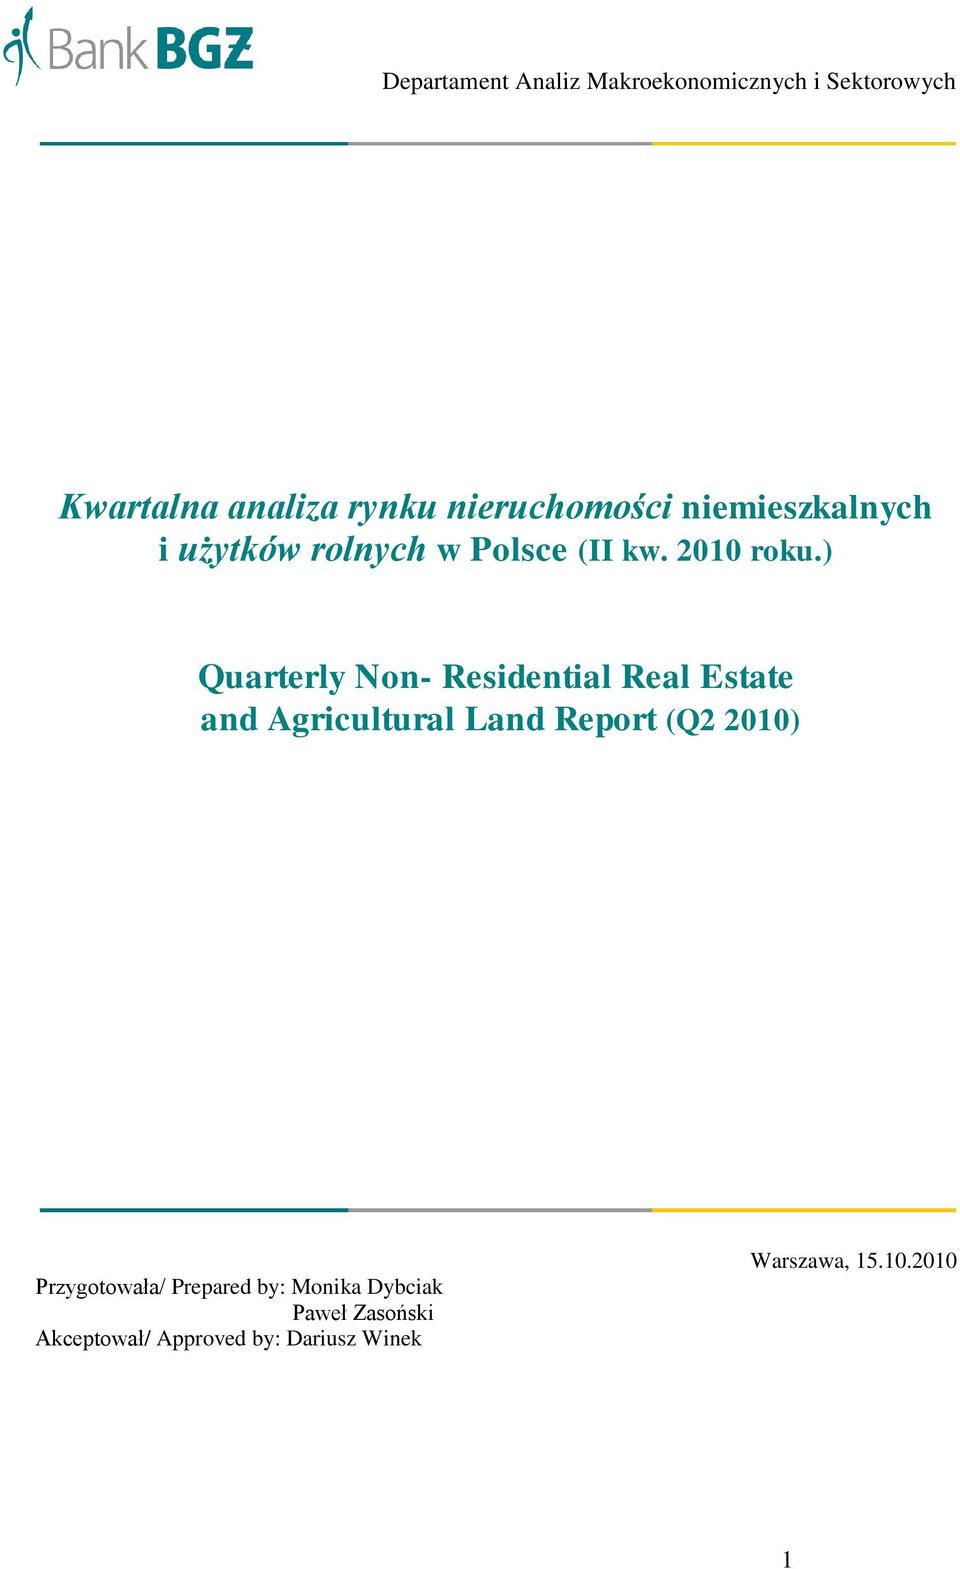 ) Quarterly Non- Residential Real Estate and Agricultural Land Report (Q2 2010)